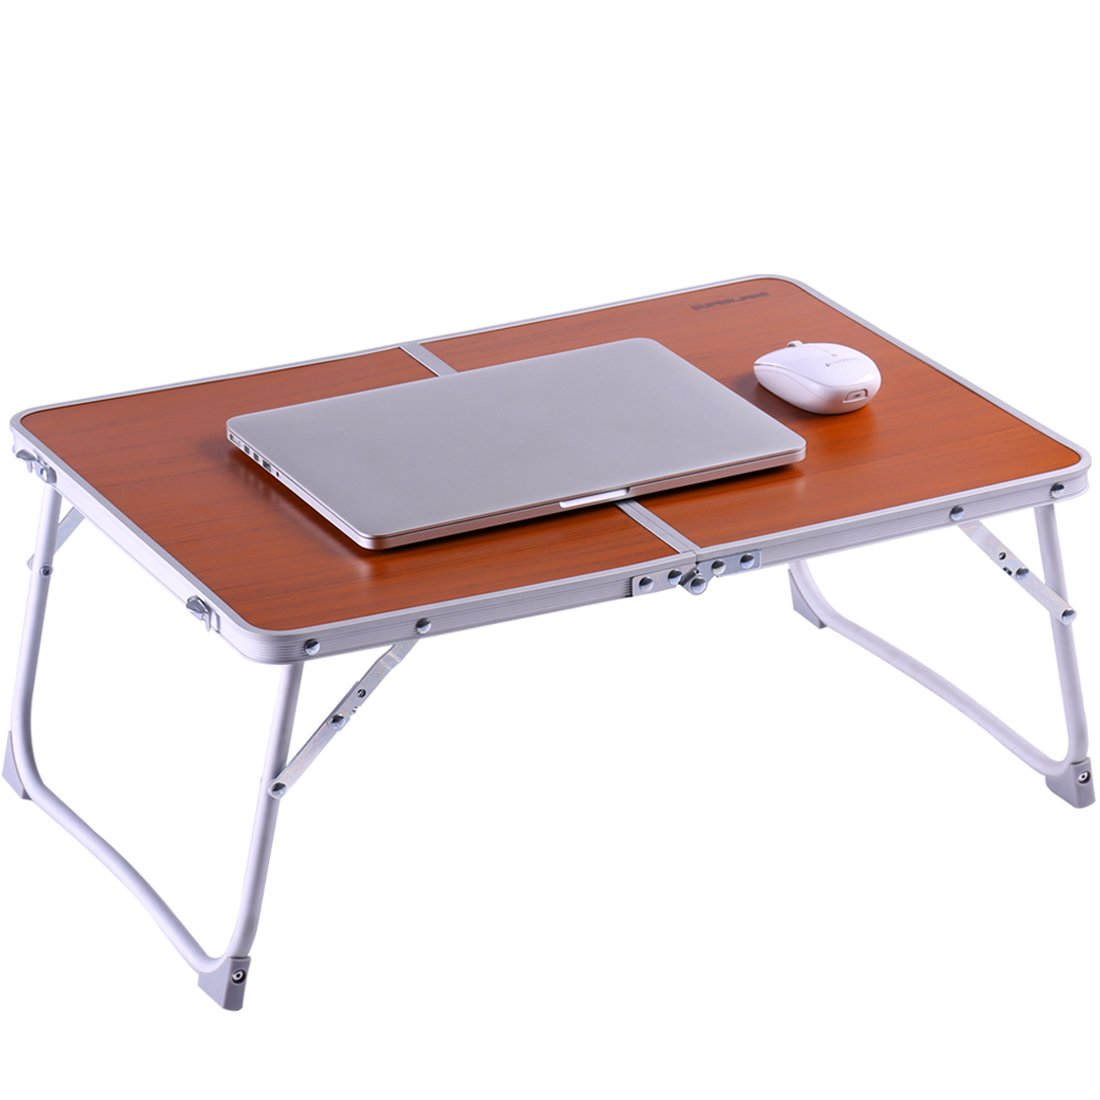 Foldable Laptop Table | Superjare Bed Desk | Breakfast Serving Bed Tray | Portable Mini Picnic Table & Ultra Lightweight | Folds in Half w' Inner Storage Space - Brown